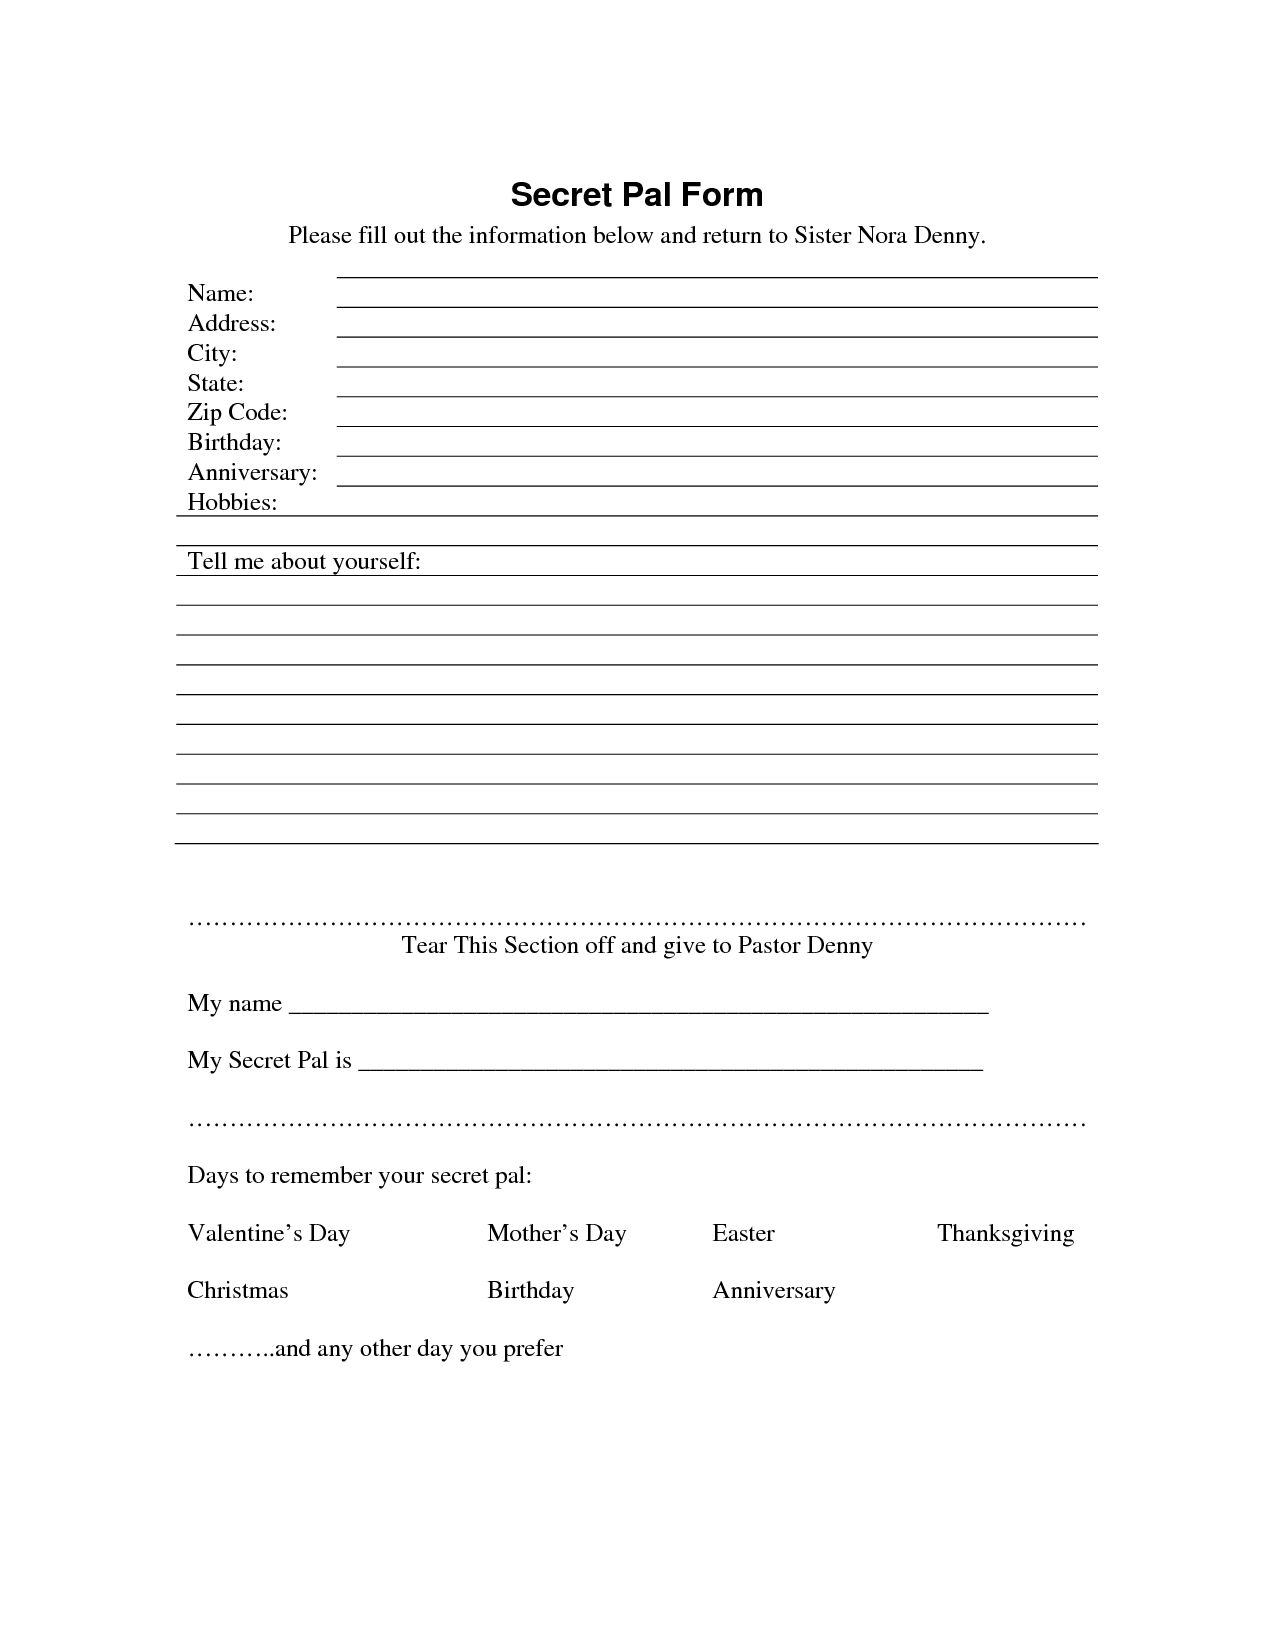 Secret Sister Questionnaire  Secret Pal Form  Download As Pdf